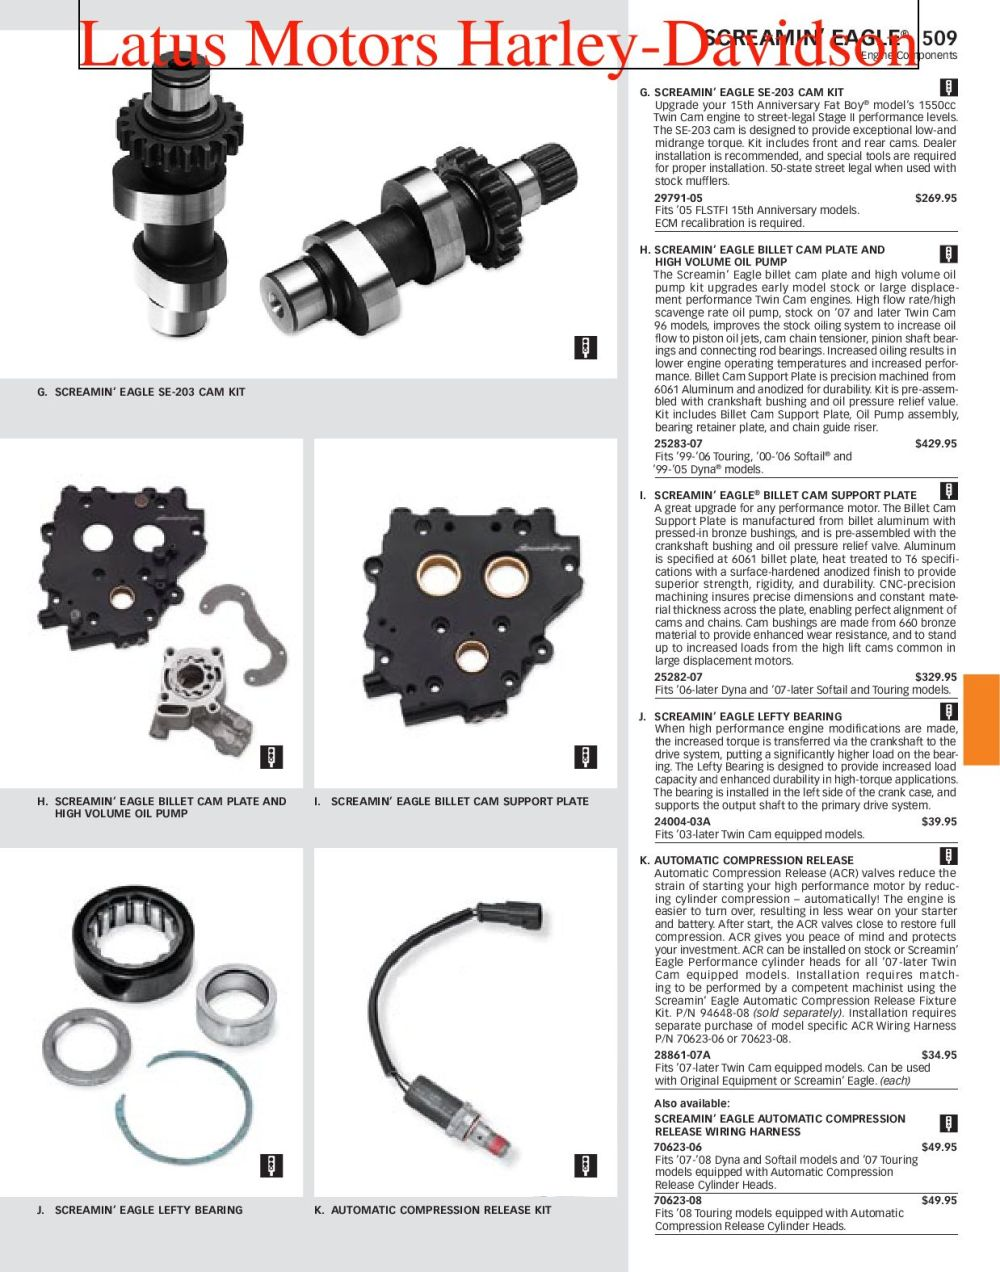 medium resolution of harley davidson screamin eagle parts and accessories catalog by harley davidson of portland issuu